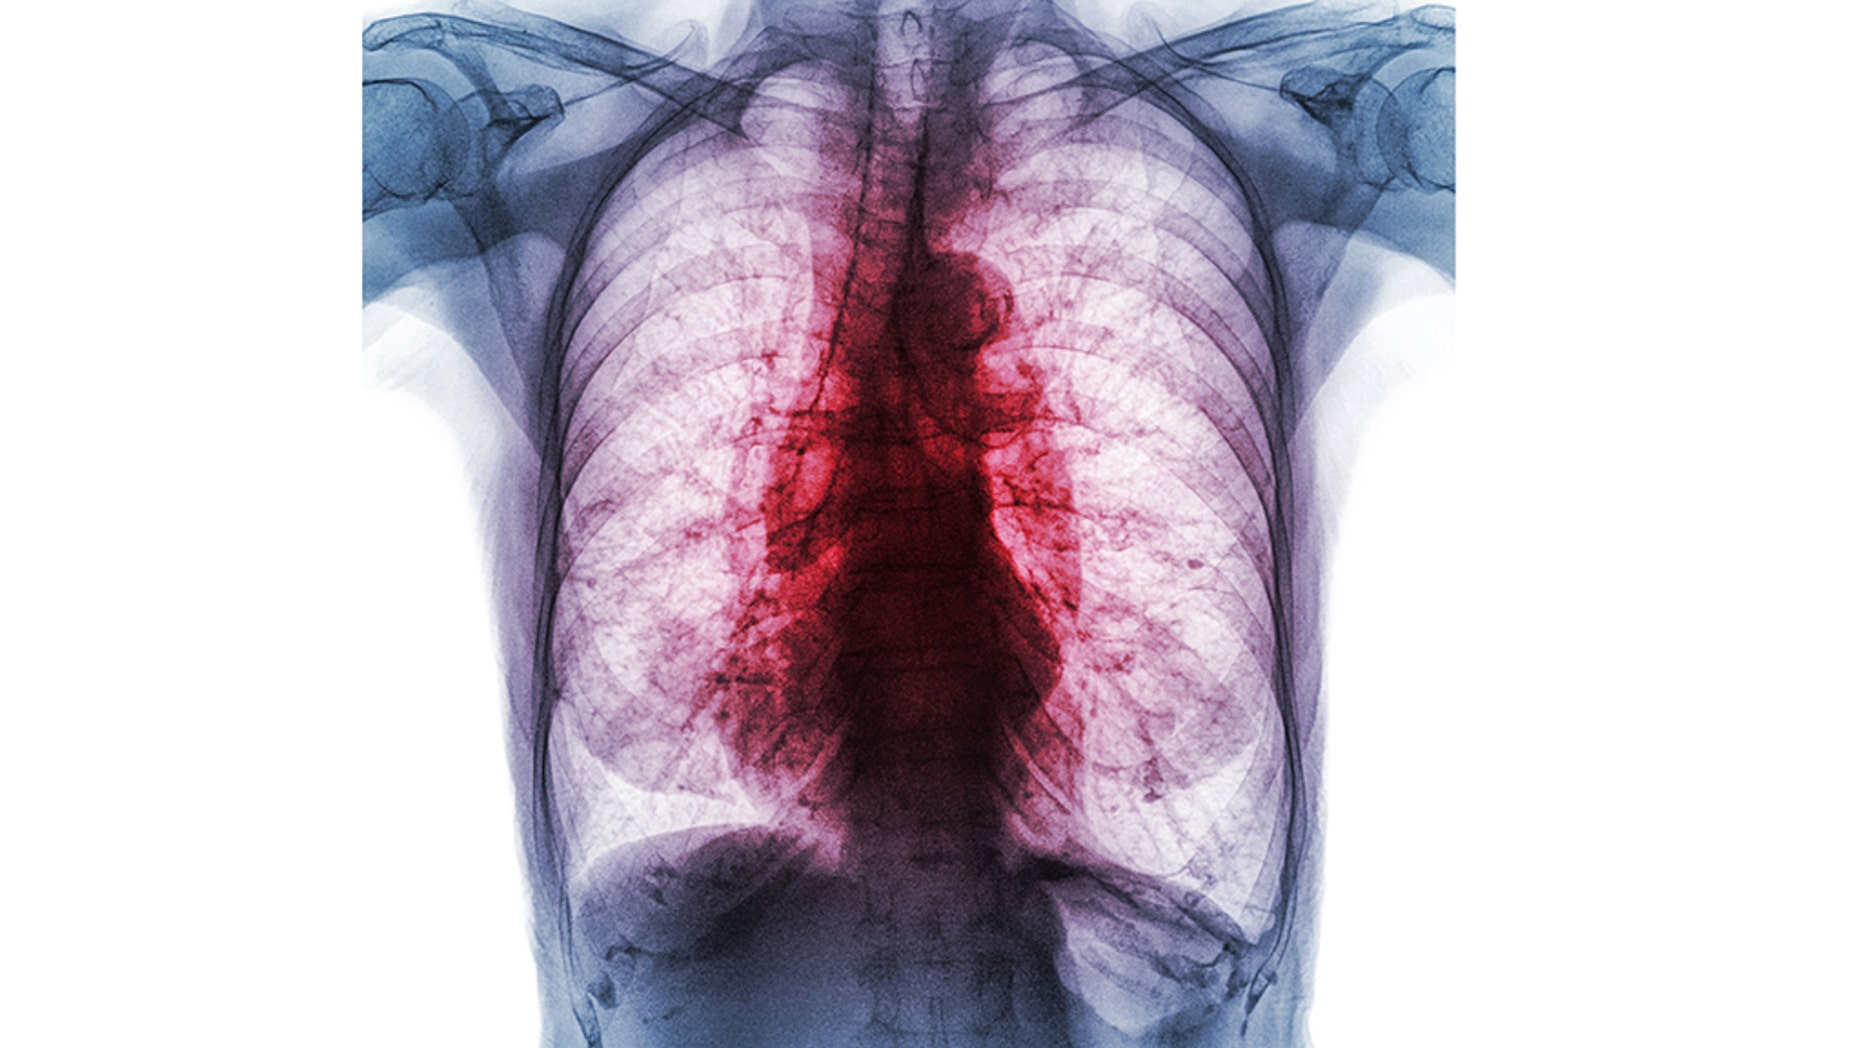 An x-ray showing the lungs of a person infected with pulmonary tuberculosis.